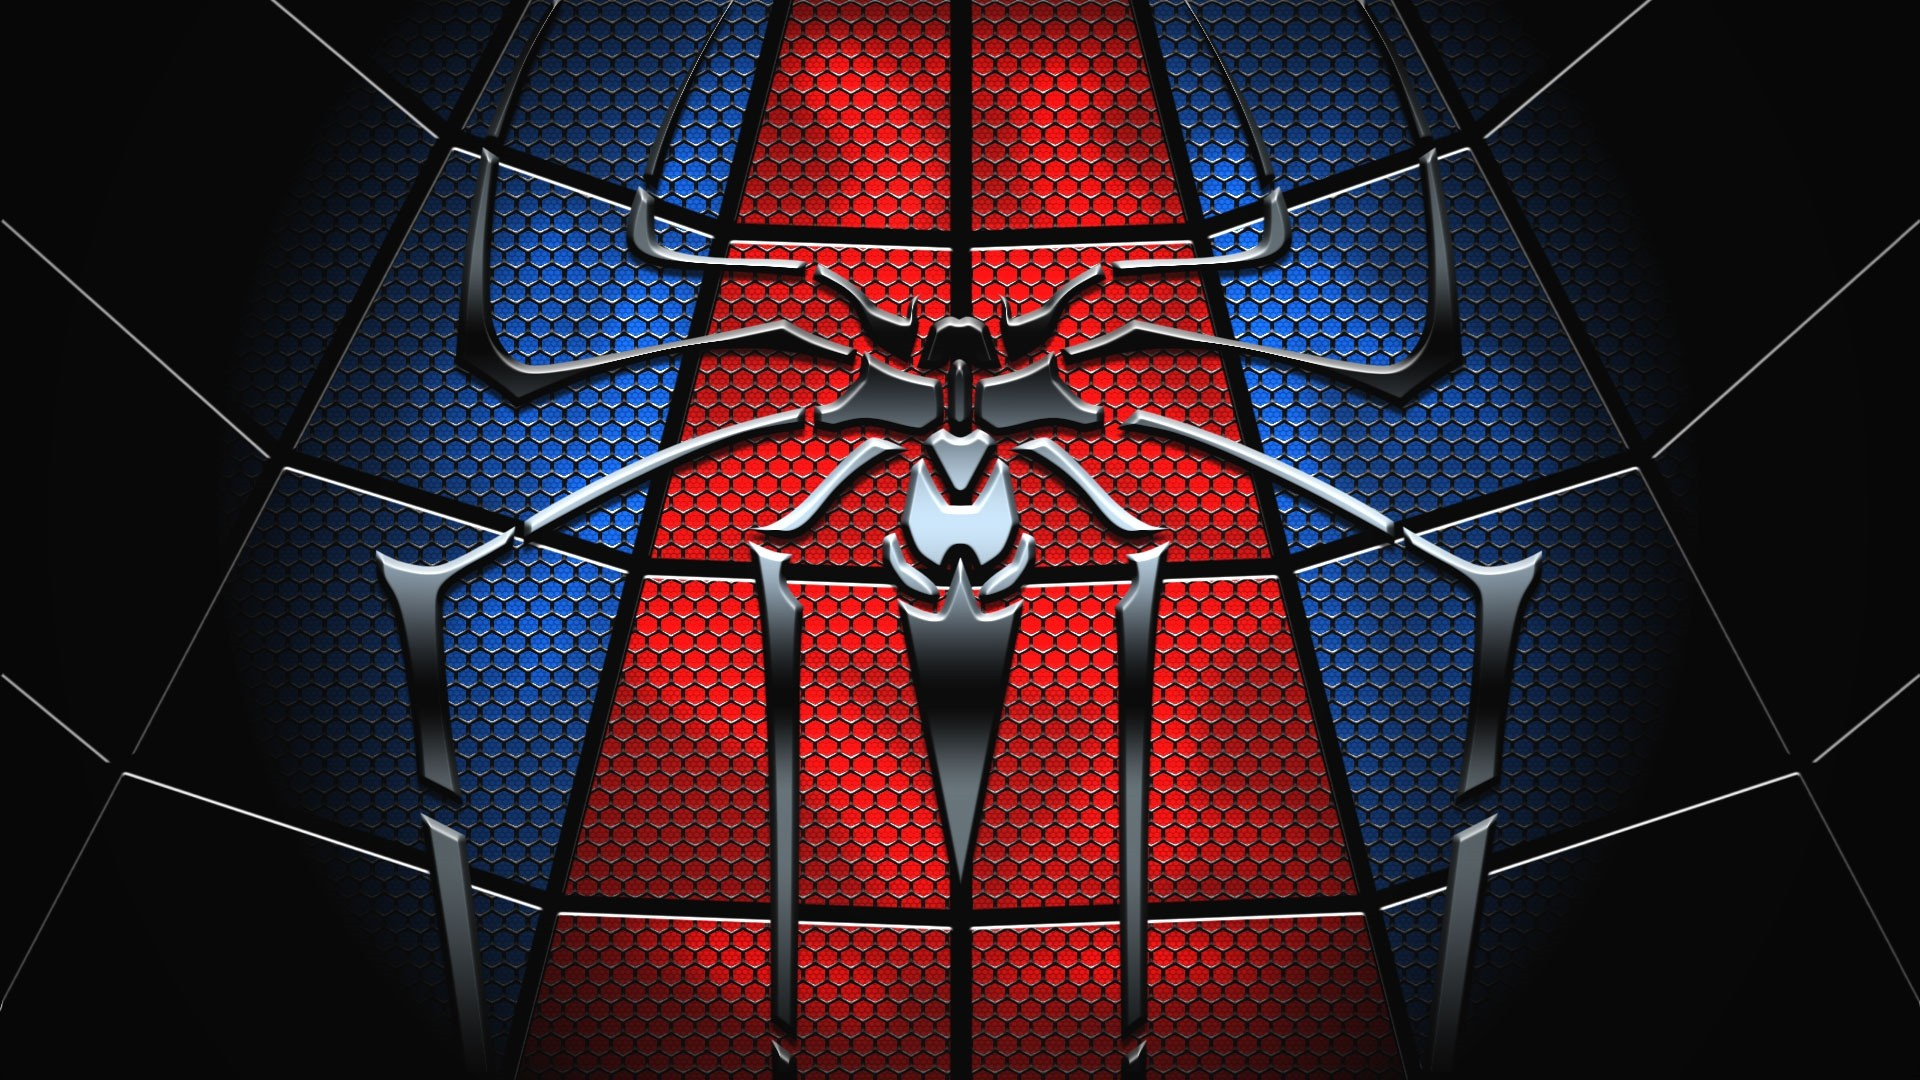 Spiderman wallpaper hd download free hd wallpapers for - Iphone 6 spiderman wallpaper ...